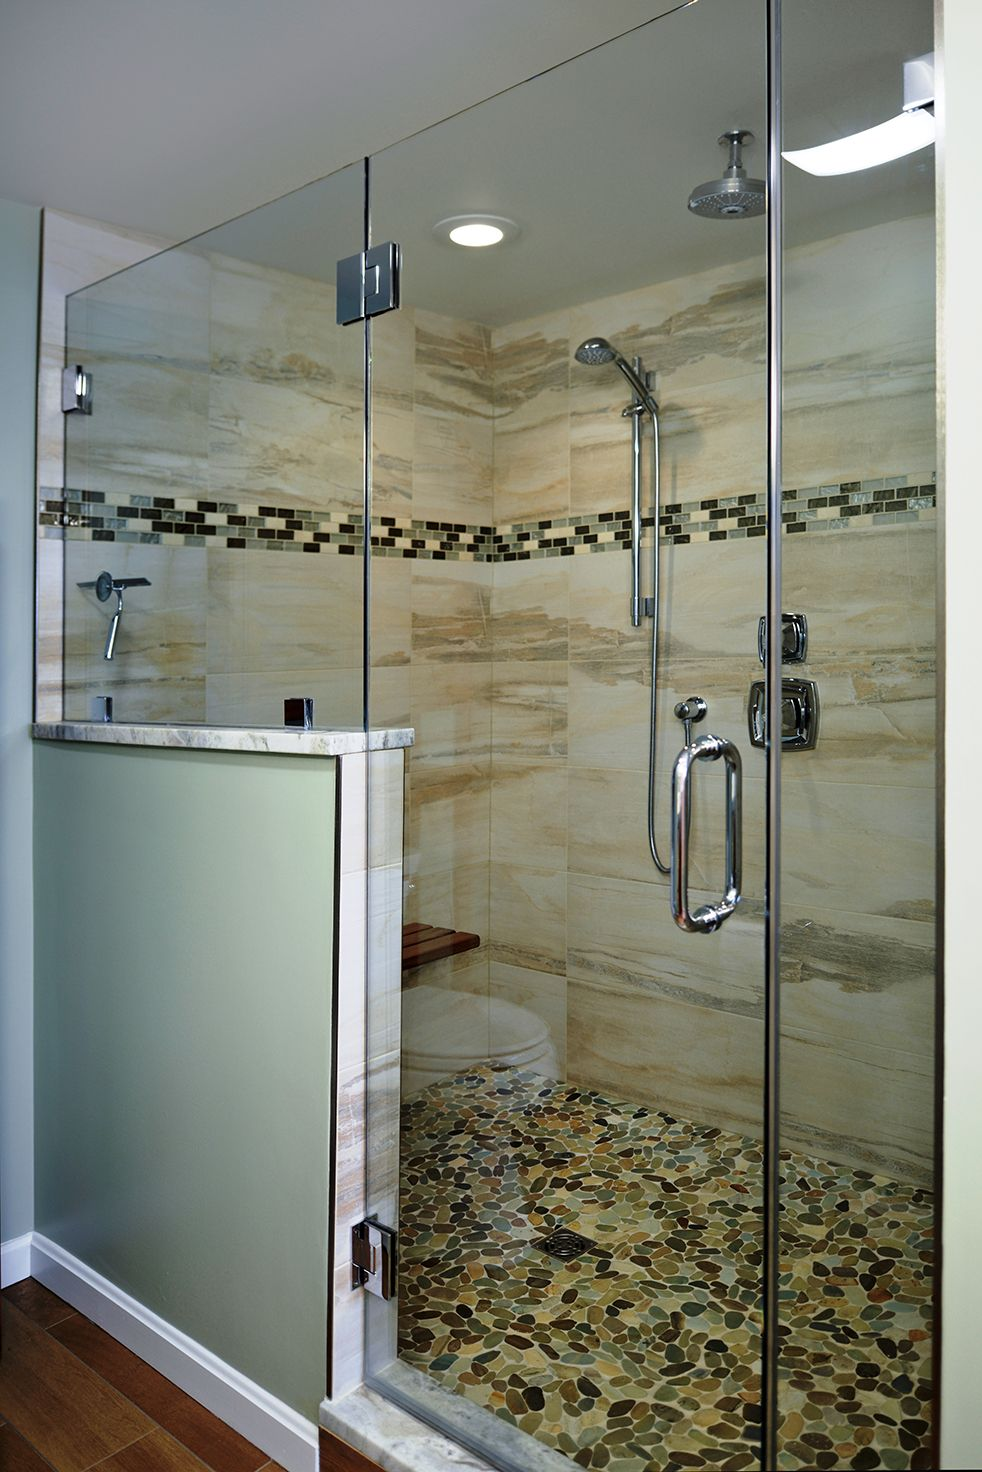 Bathroom Renovation Northern Virginia  Let Us Help You Enjoy The Magnificent Virginia Bathroom Remodeling Design Ideas